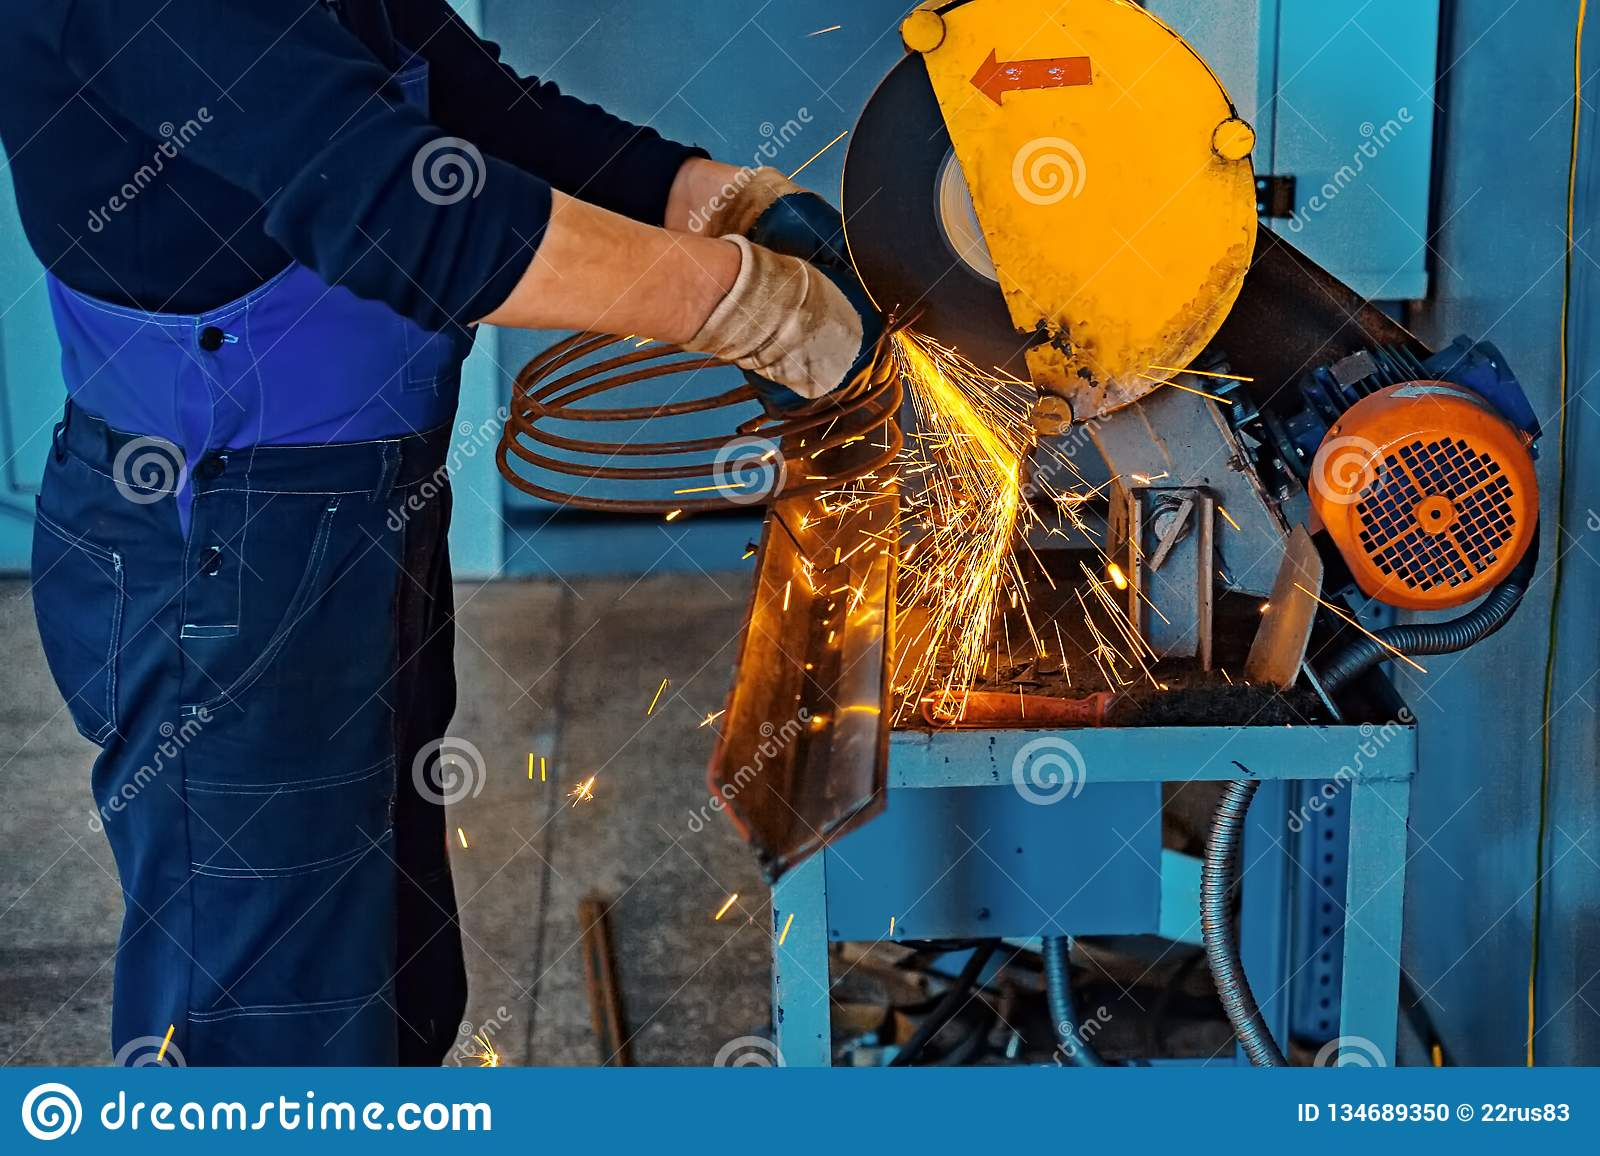 Technician in gloves and overalls in the workplace. Cutting metal with a machine in the shop